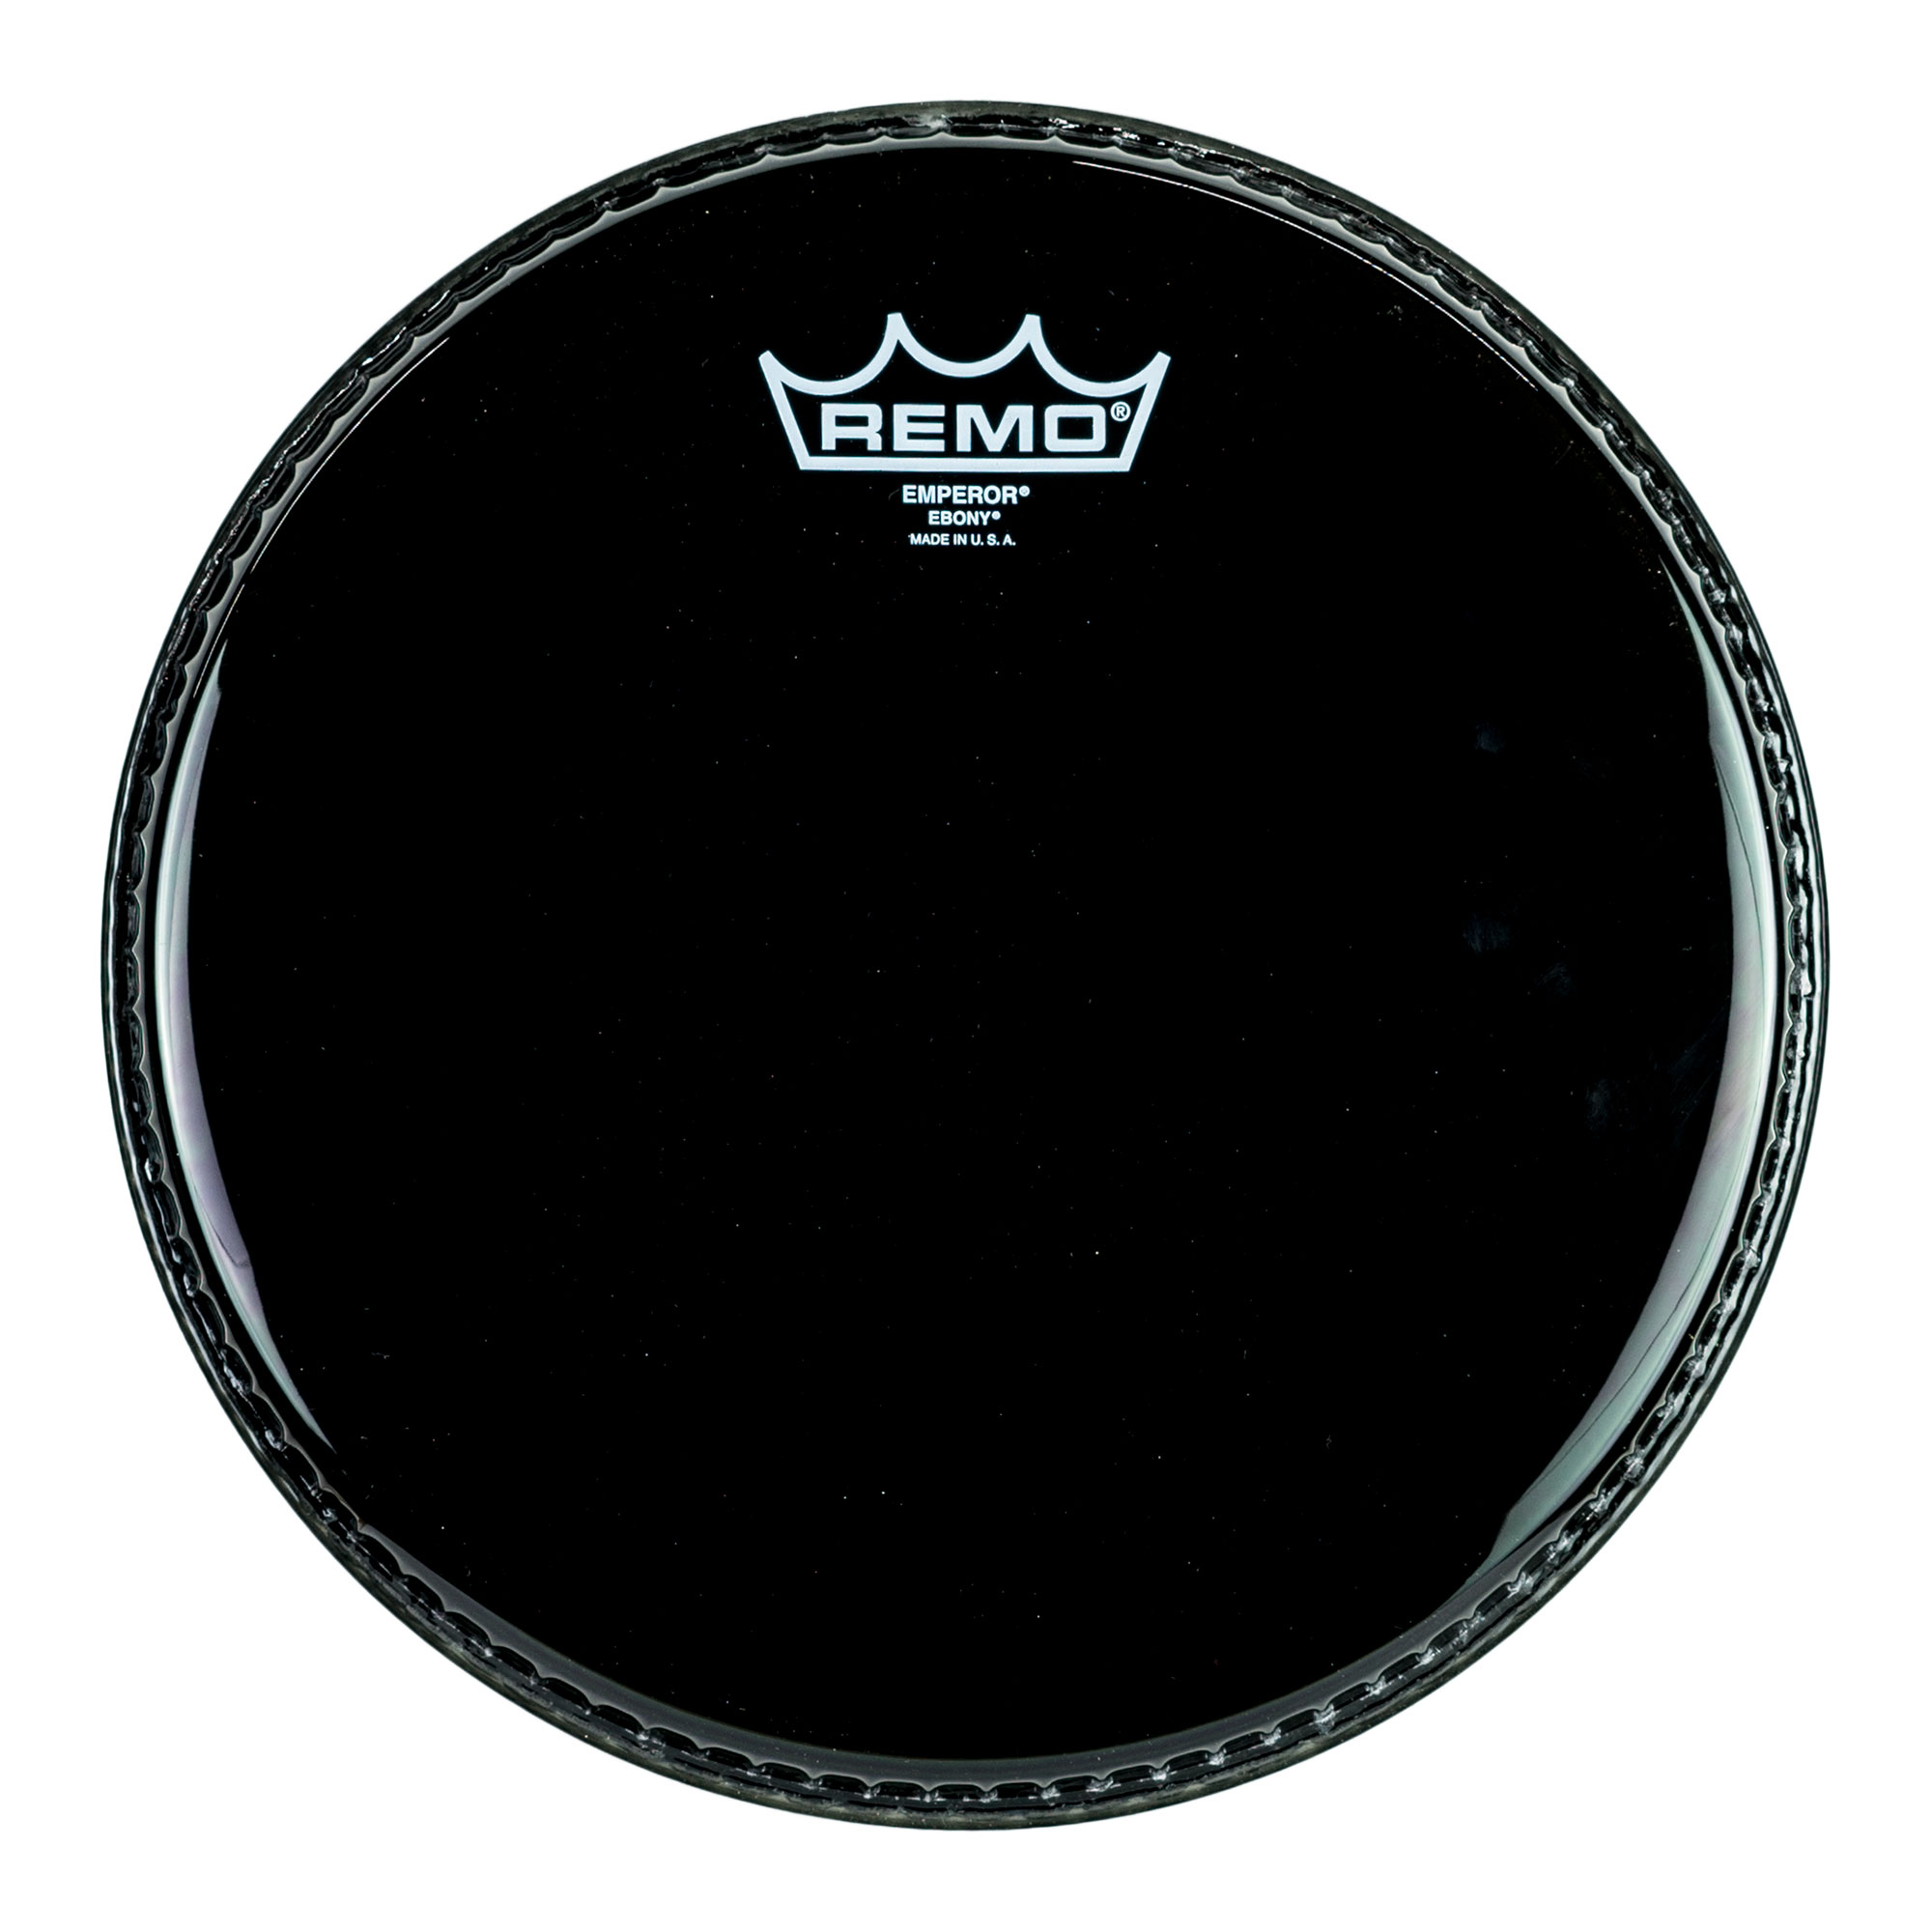 "Remo 10"" Emperor Ebony Drum Head"